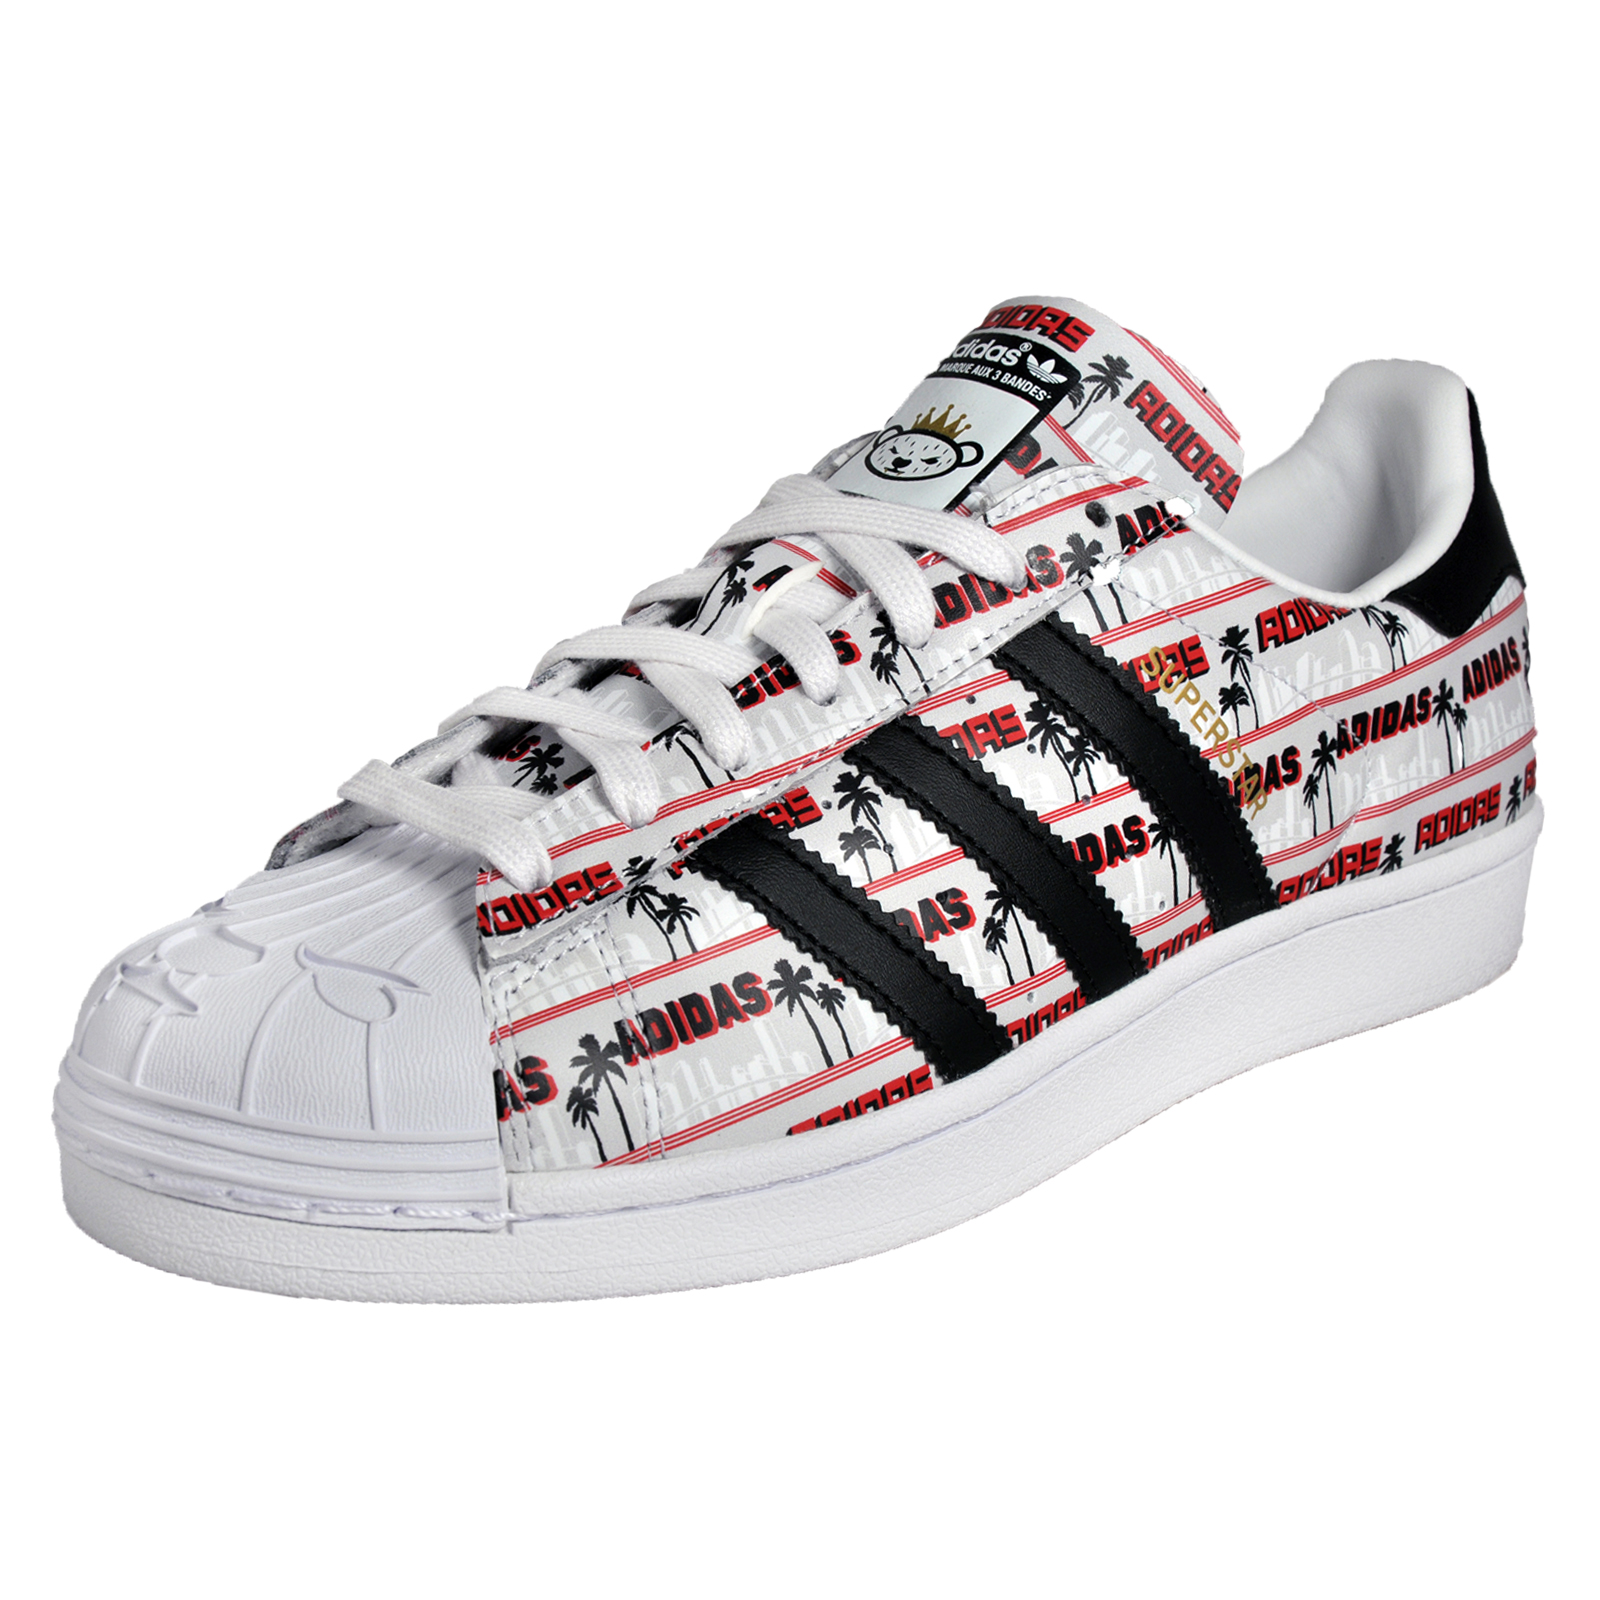 buy online 19df5 dfba2 Details about Adidas Originals Superstar Nigo Bearfoot Mens Classic Casual  Trainers White